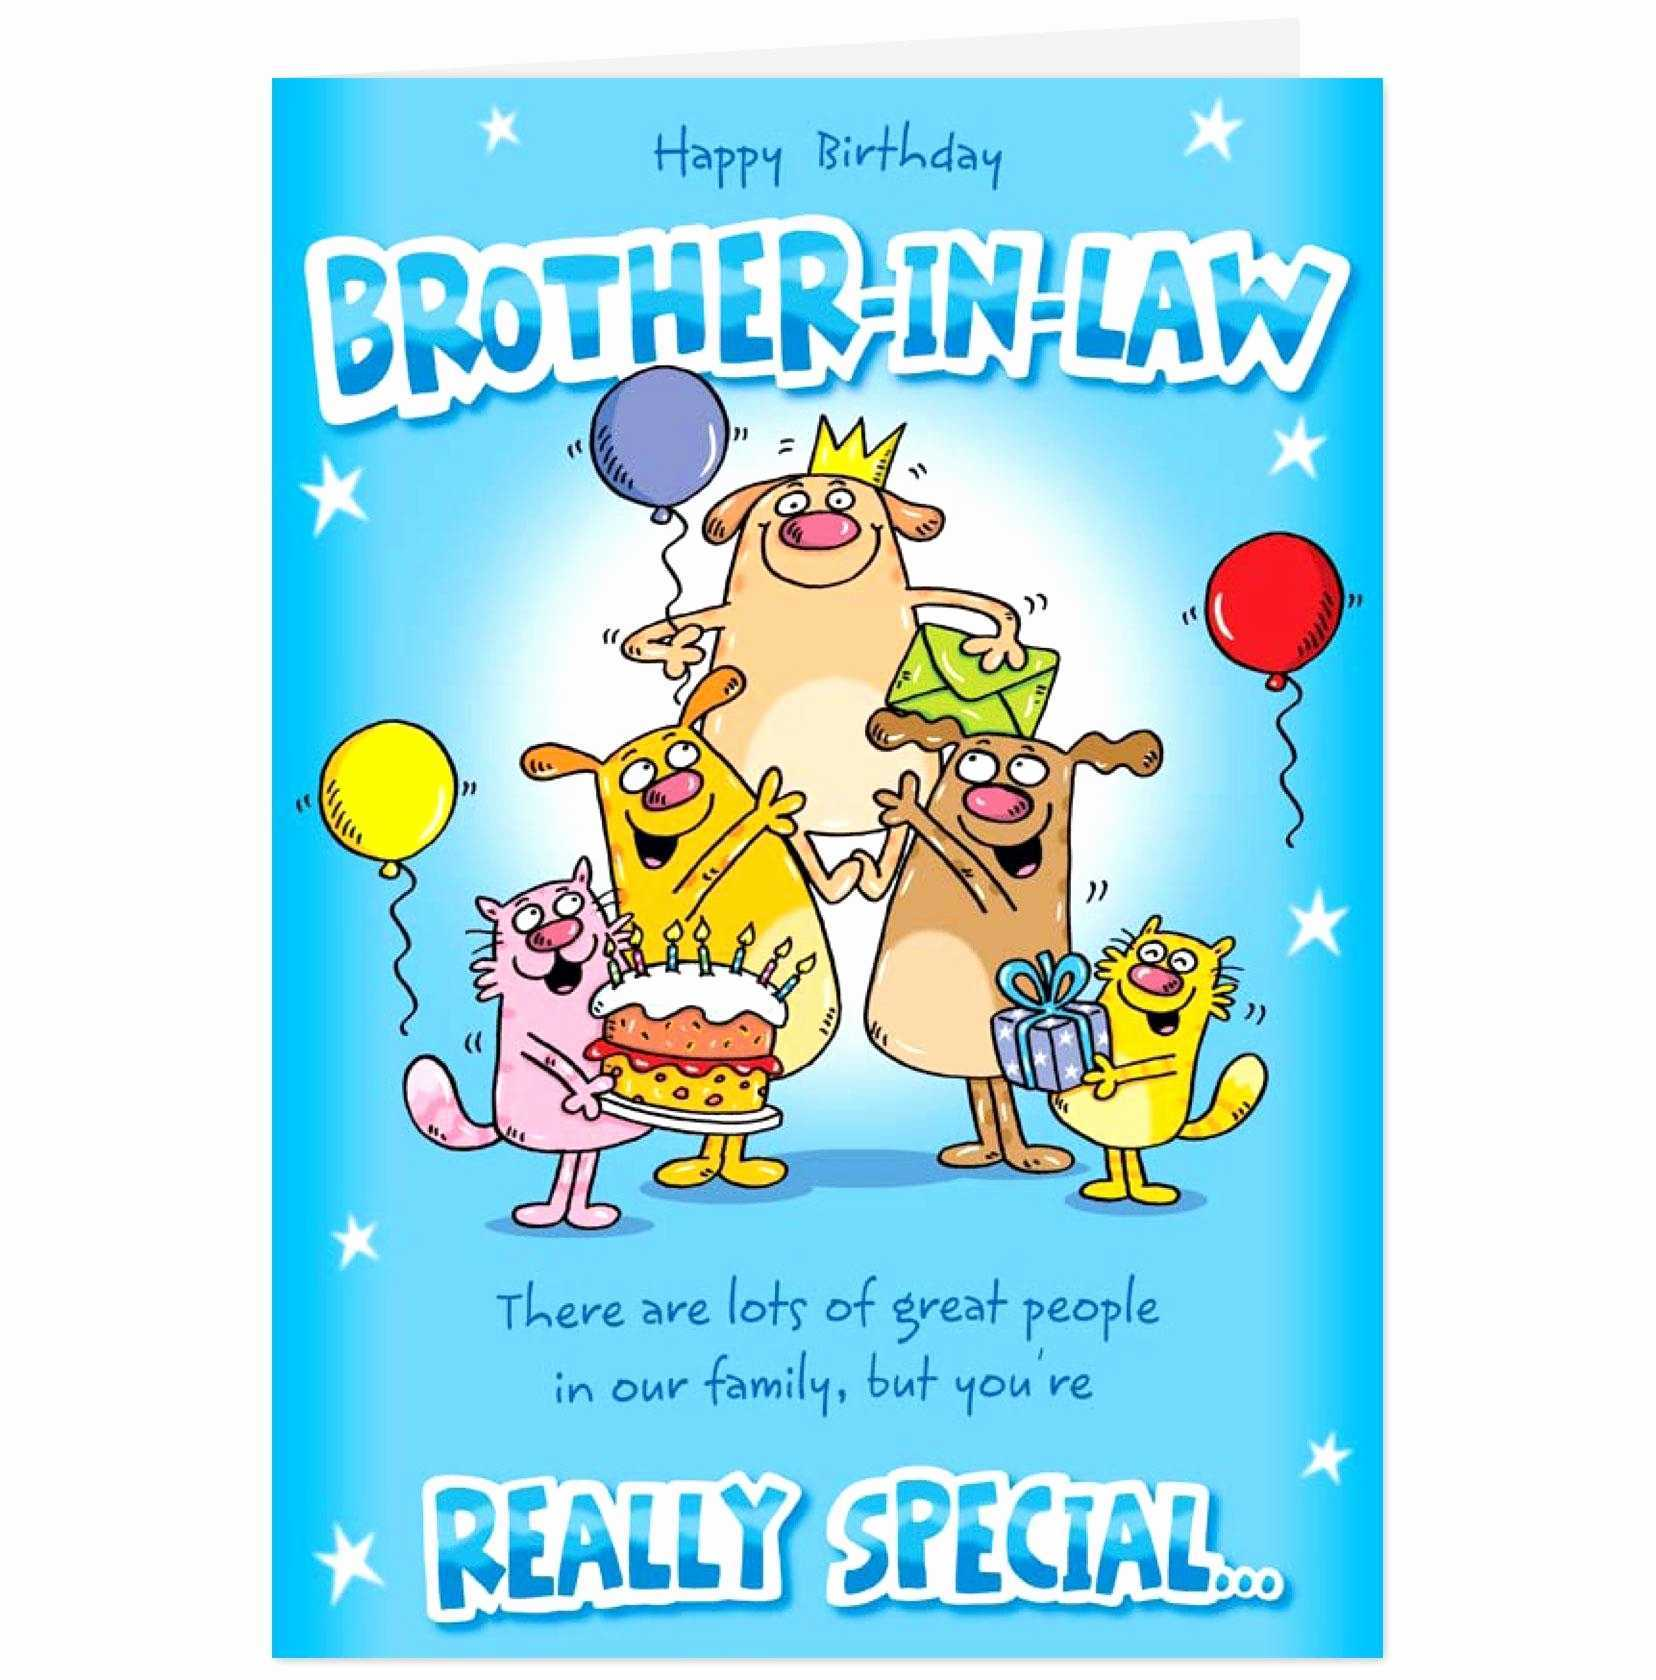 naughty happy birthday ; naughty-happy-birthday-images-awesome-naughty-birthday-cards-best-lovely-naughty-of-naughty-happy-birthday-images